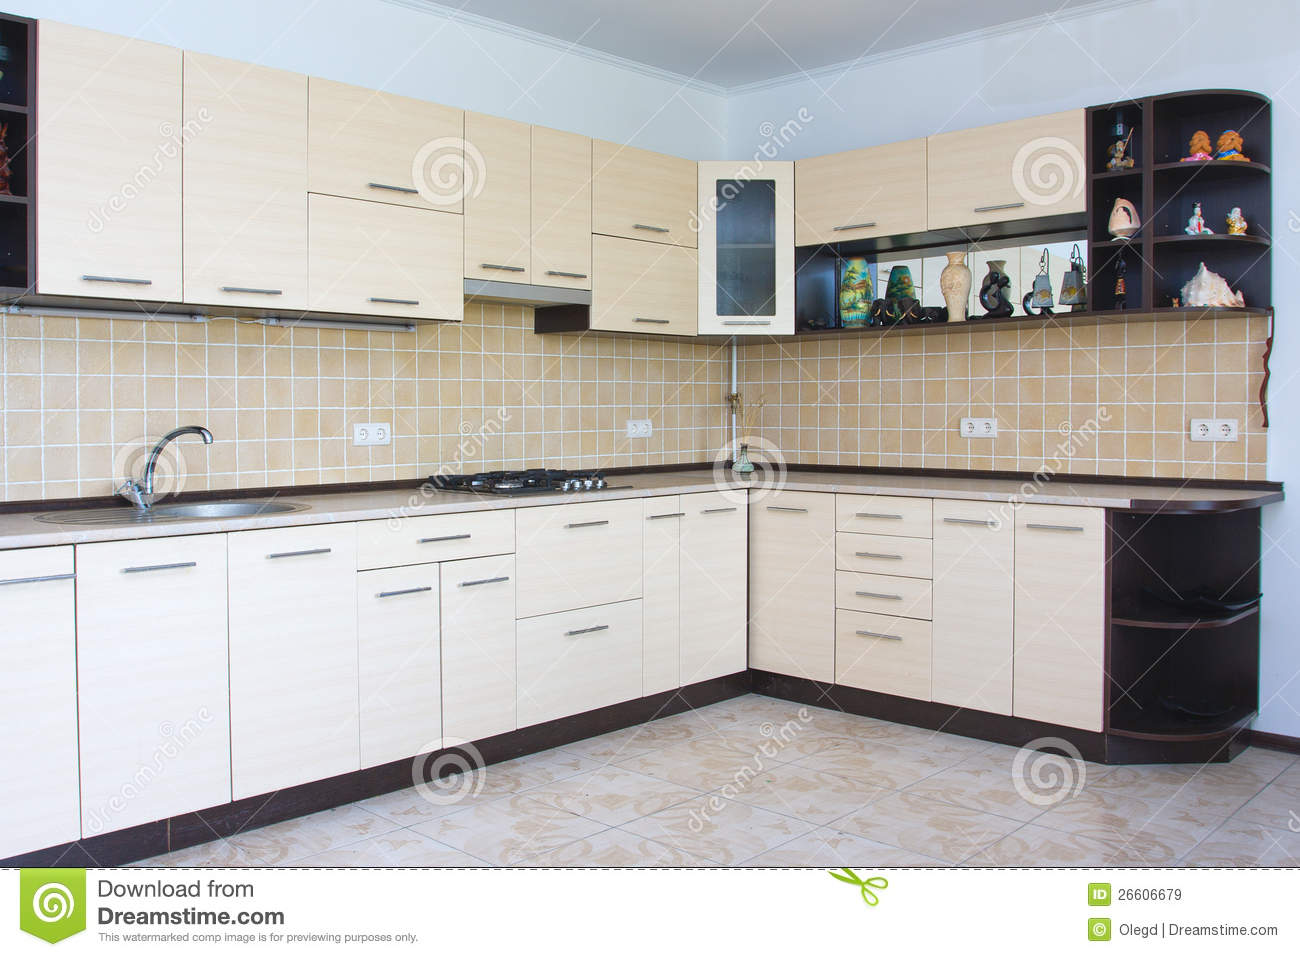 Modern kitchen interior stock image. Image of indoors - 26606679